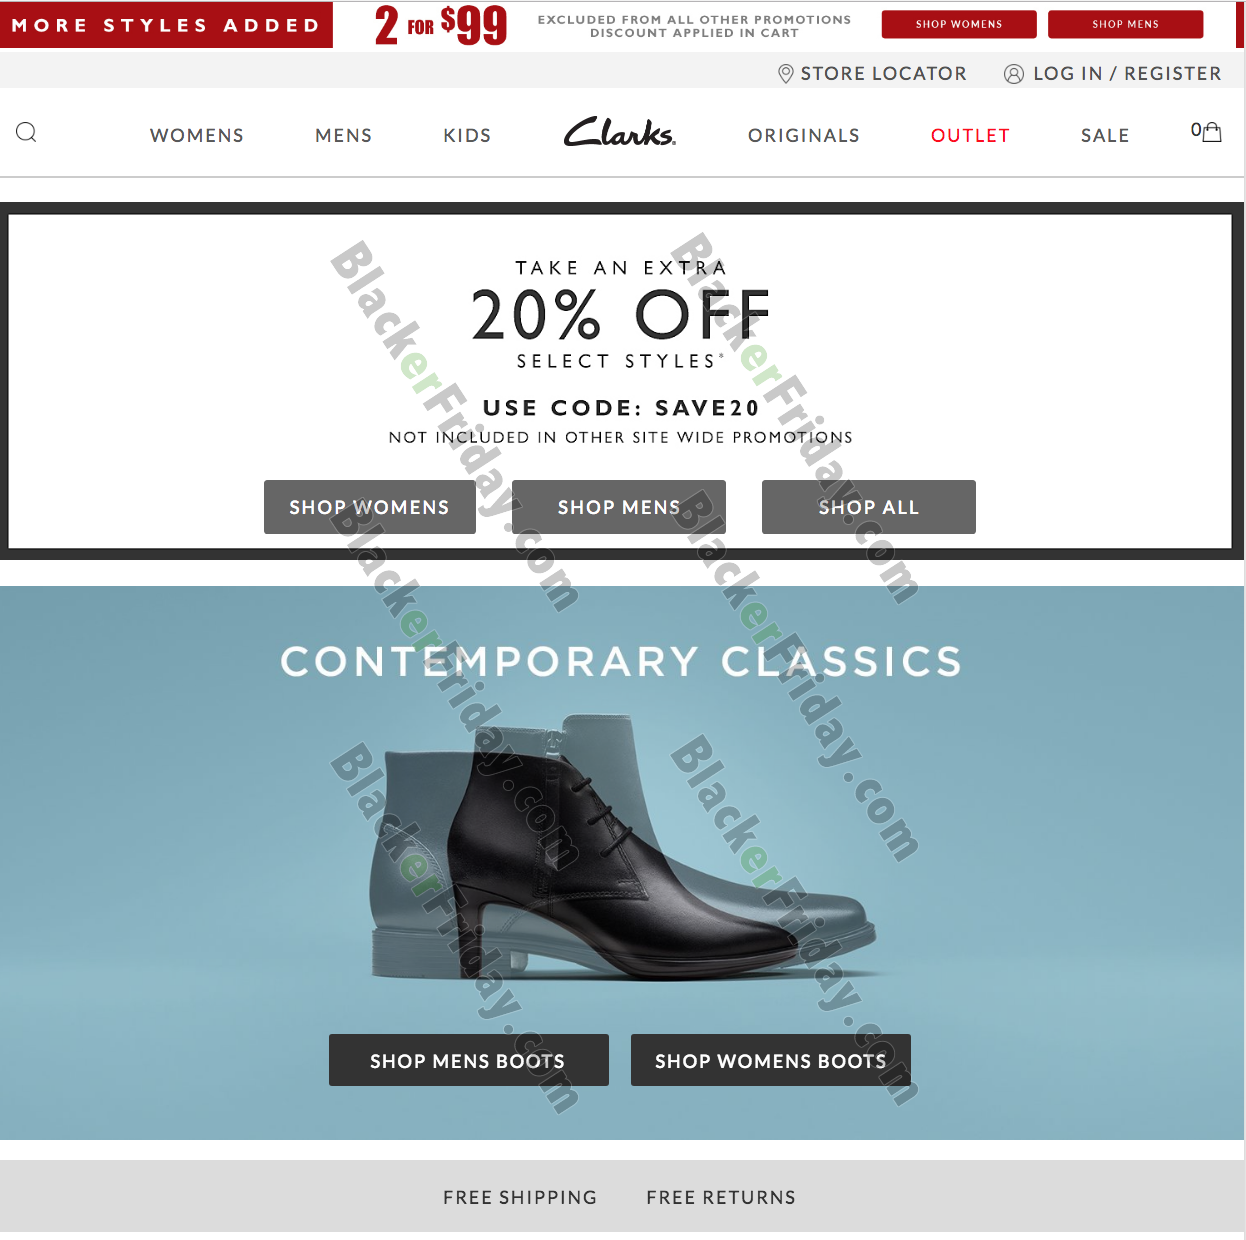 Clarks After Christmas Sale 2020 - What